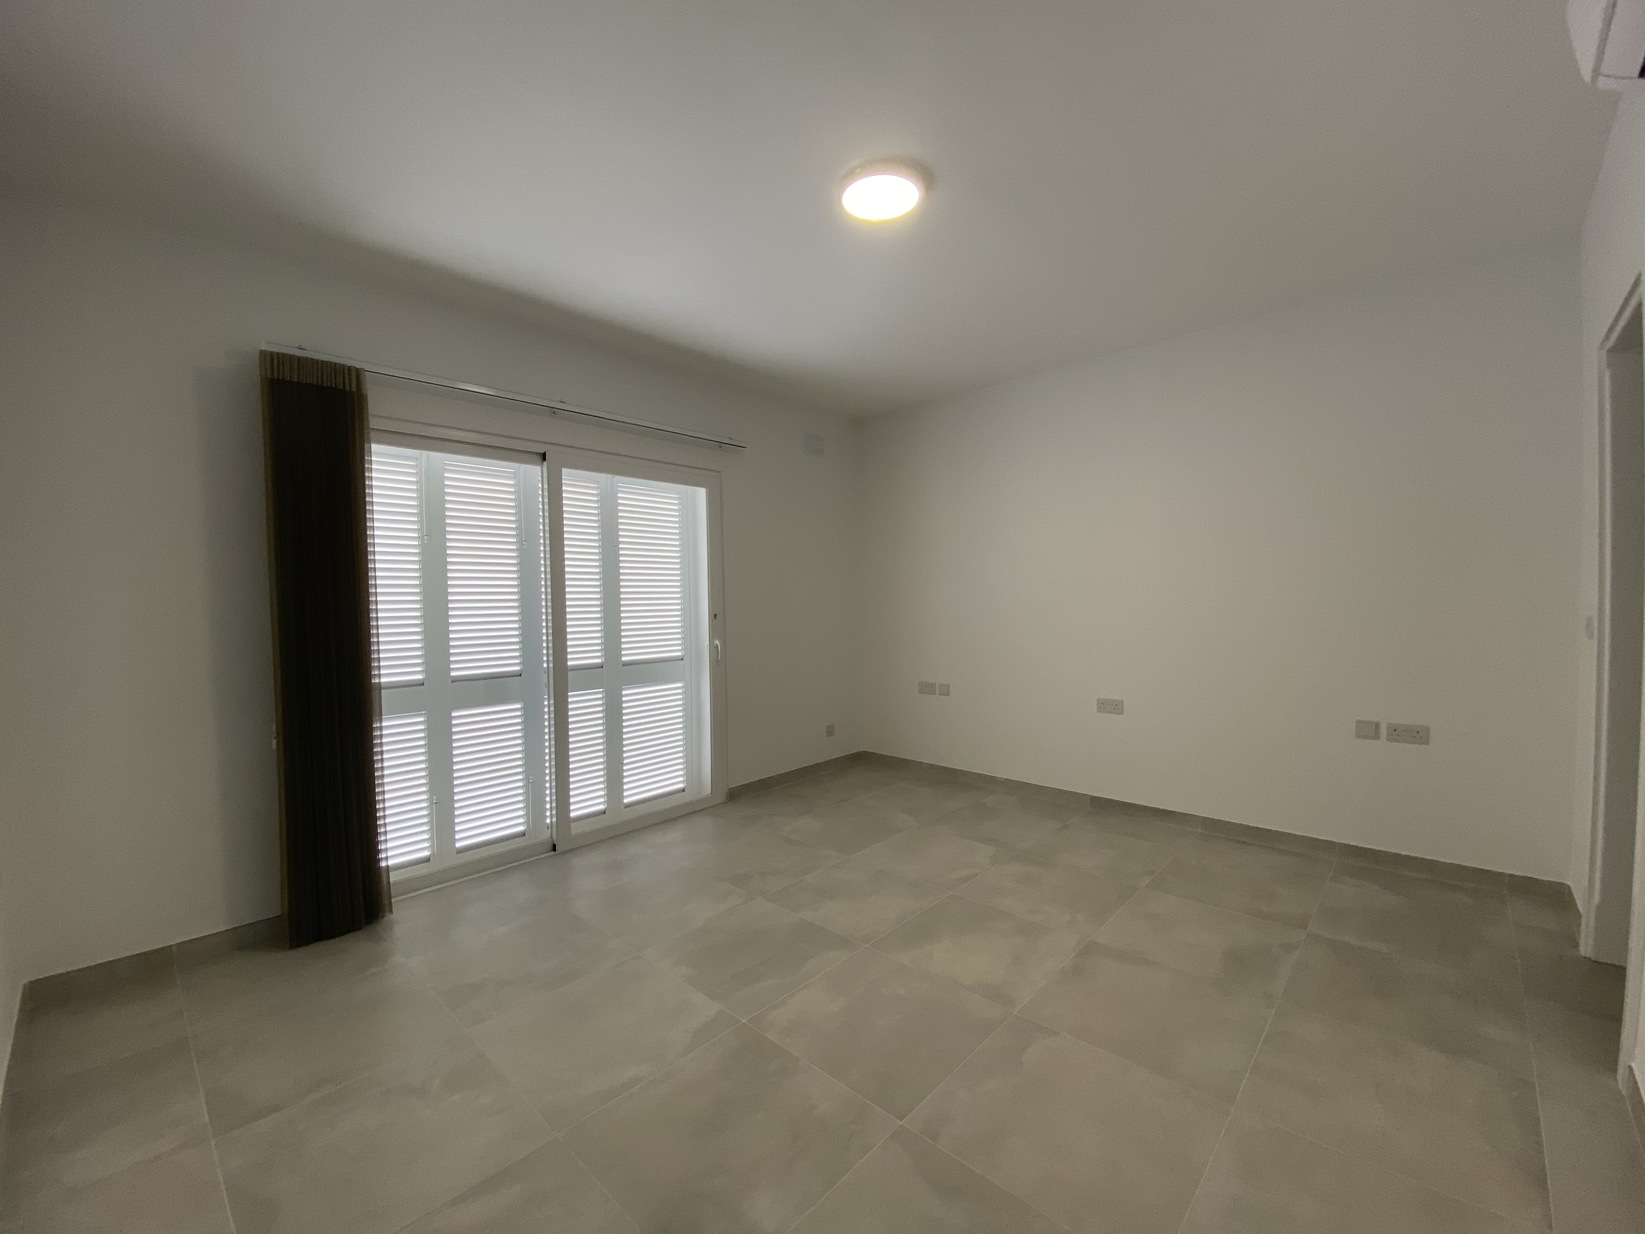 3 bed Maisonette For Rent in Lija, Lija - thumb 10